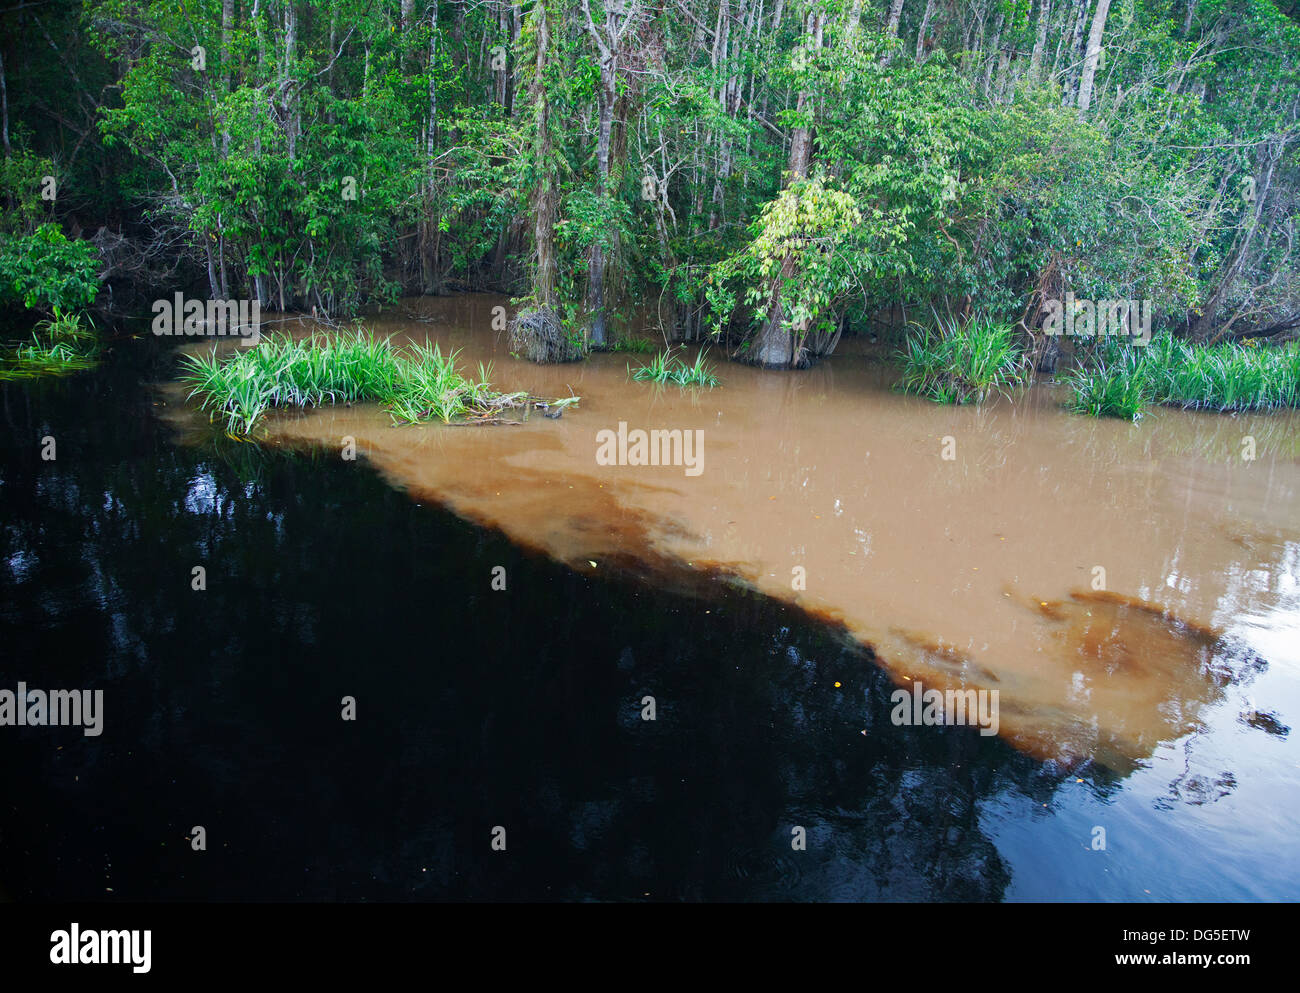 Natural clean black water of the Sekonyer Kanan tributary flowing into muddy water of the main Sekonyer River polluted by illegal gold mining, Borneo - Stock Image